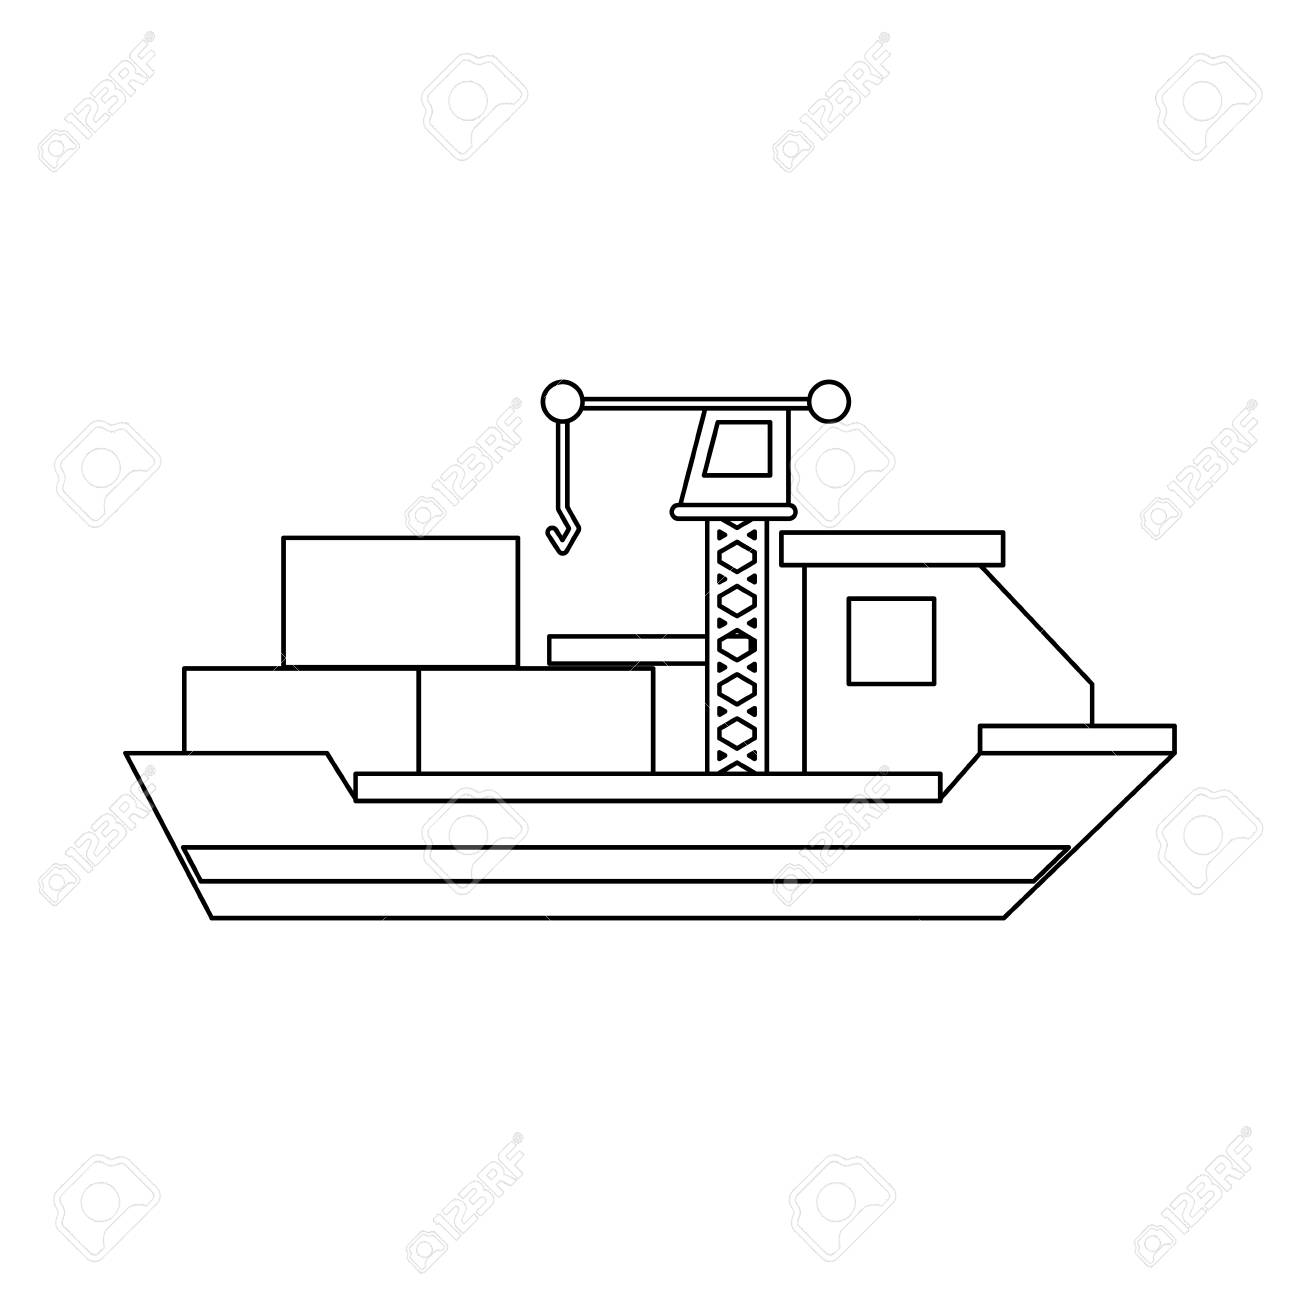 hight resolution of freighter ship symbol icon vector illustration graphic design stock vector 94443021